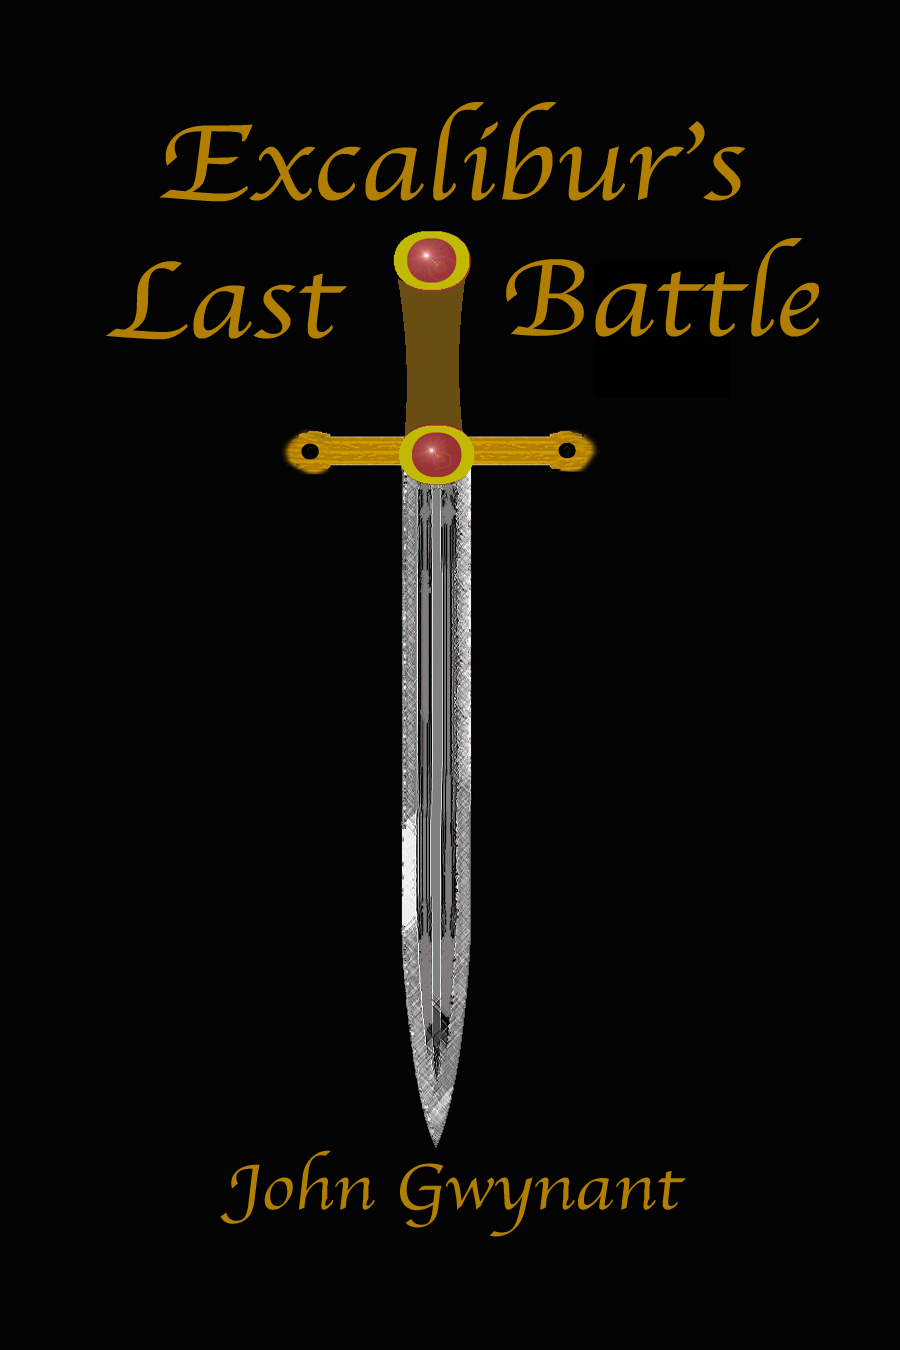 Excalibur's Last Battle